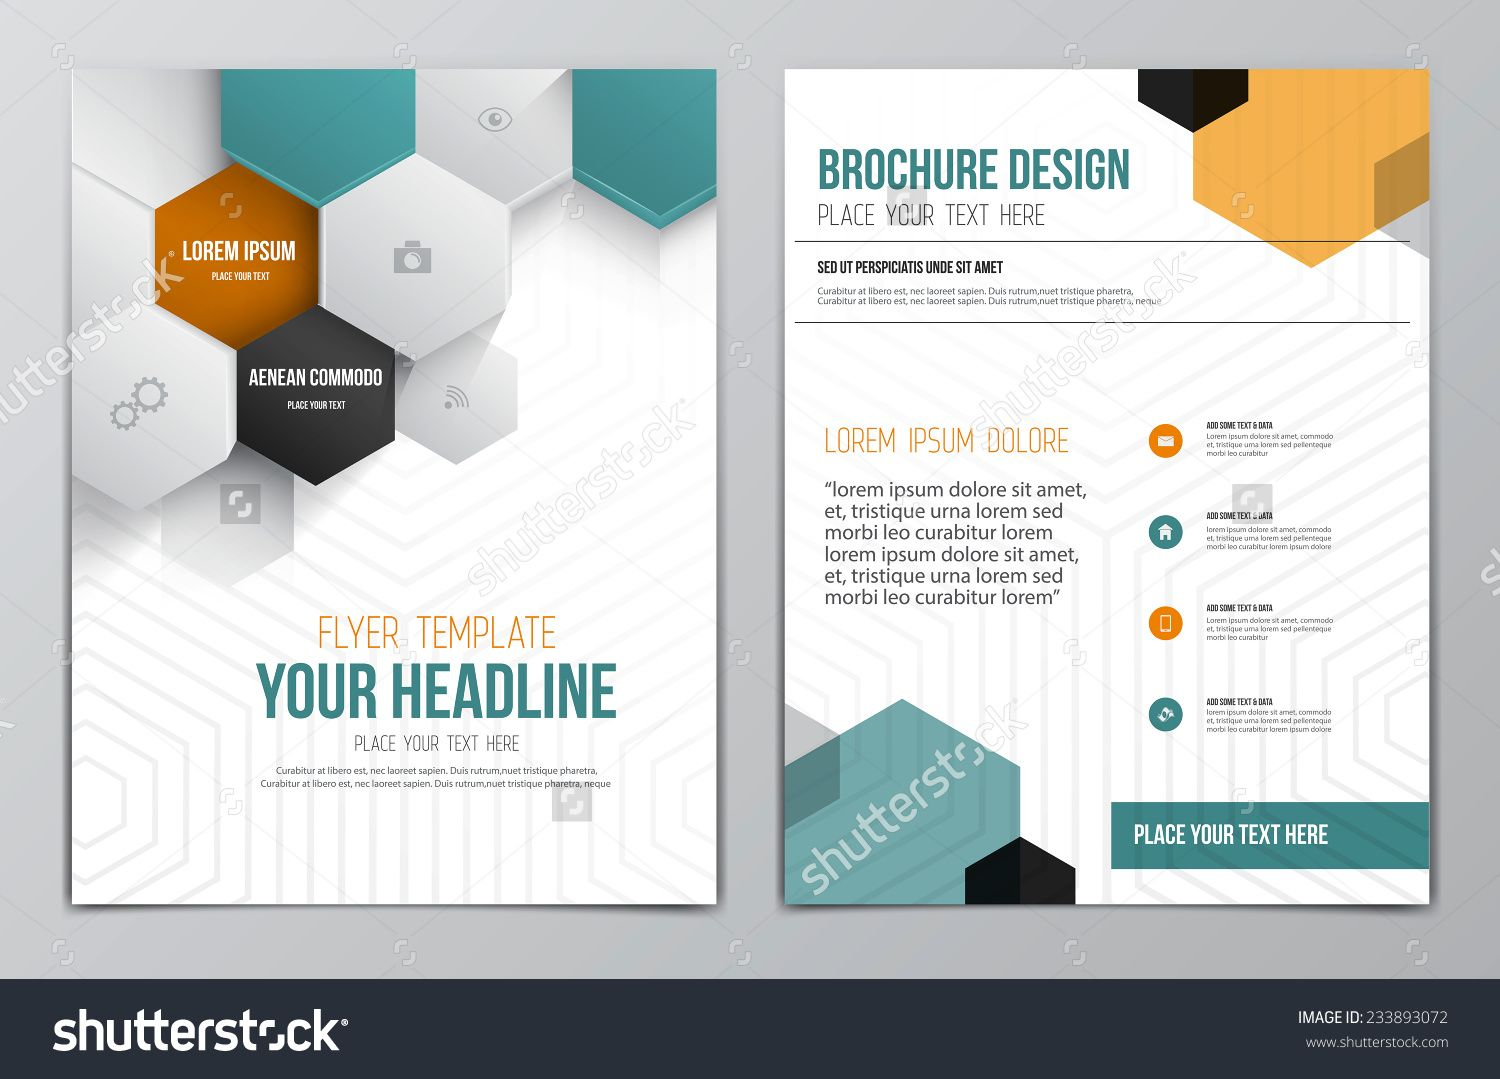 Brochure design template geometric shapes abstract for Brochure design layout ideas